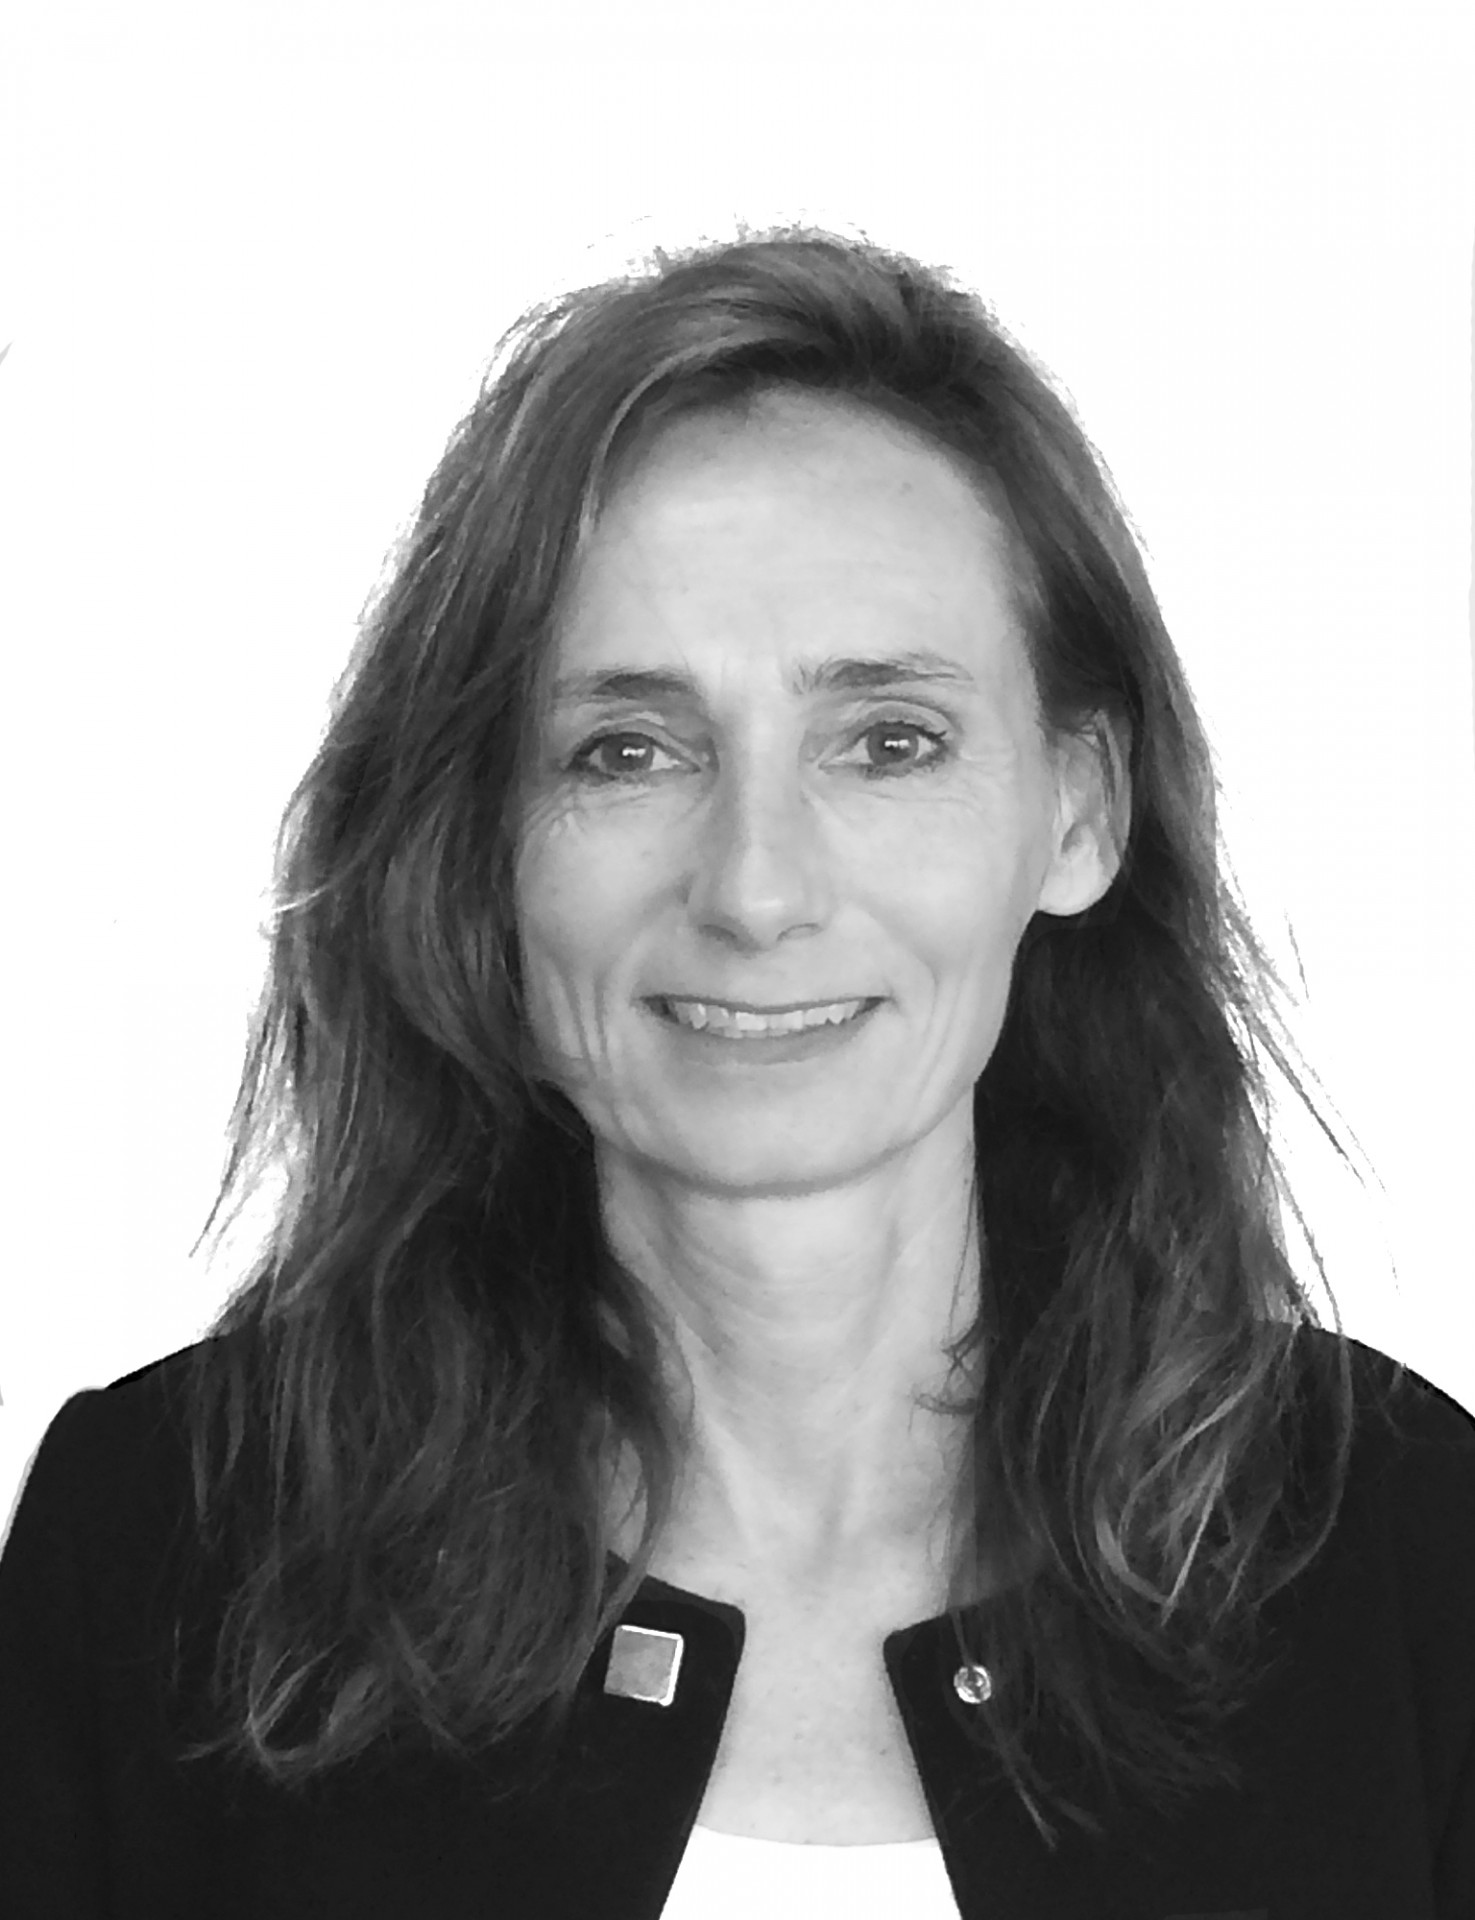 Hélène de Fontaineu, Marketing, Communication, Press relations Director